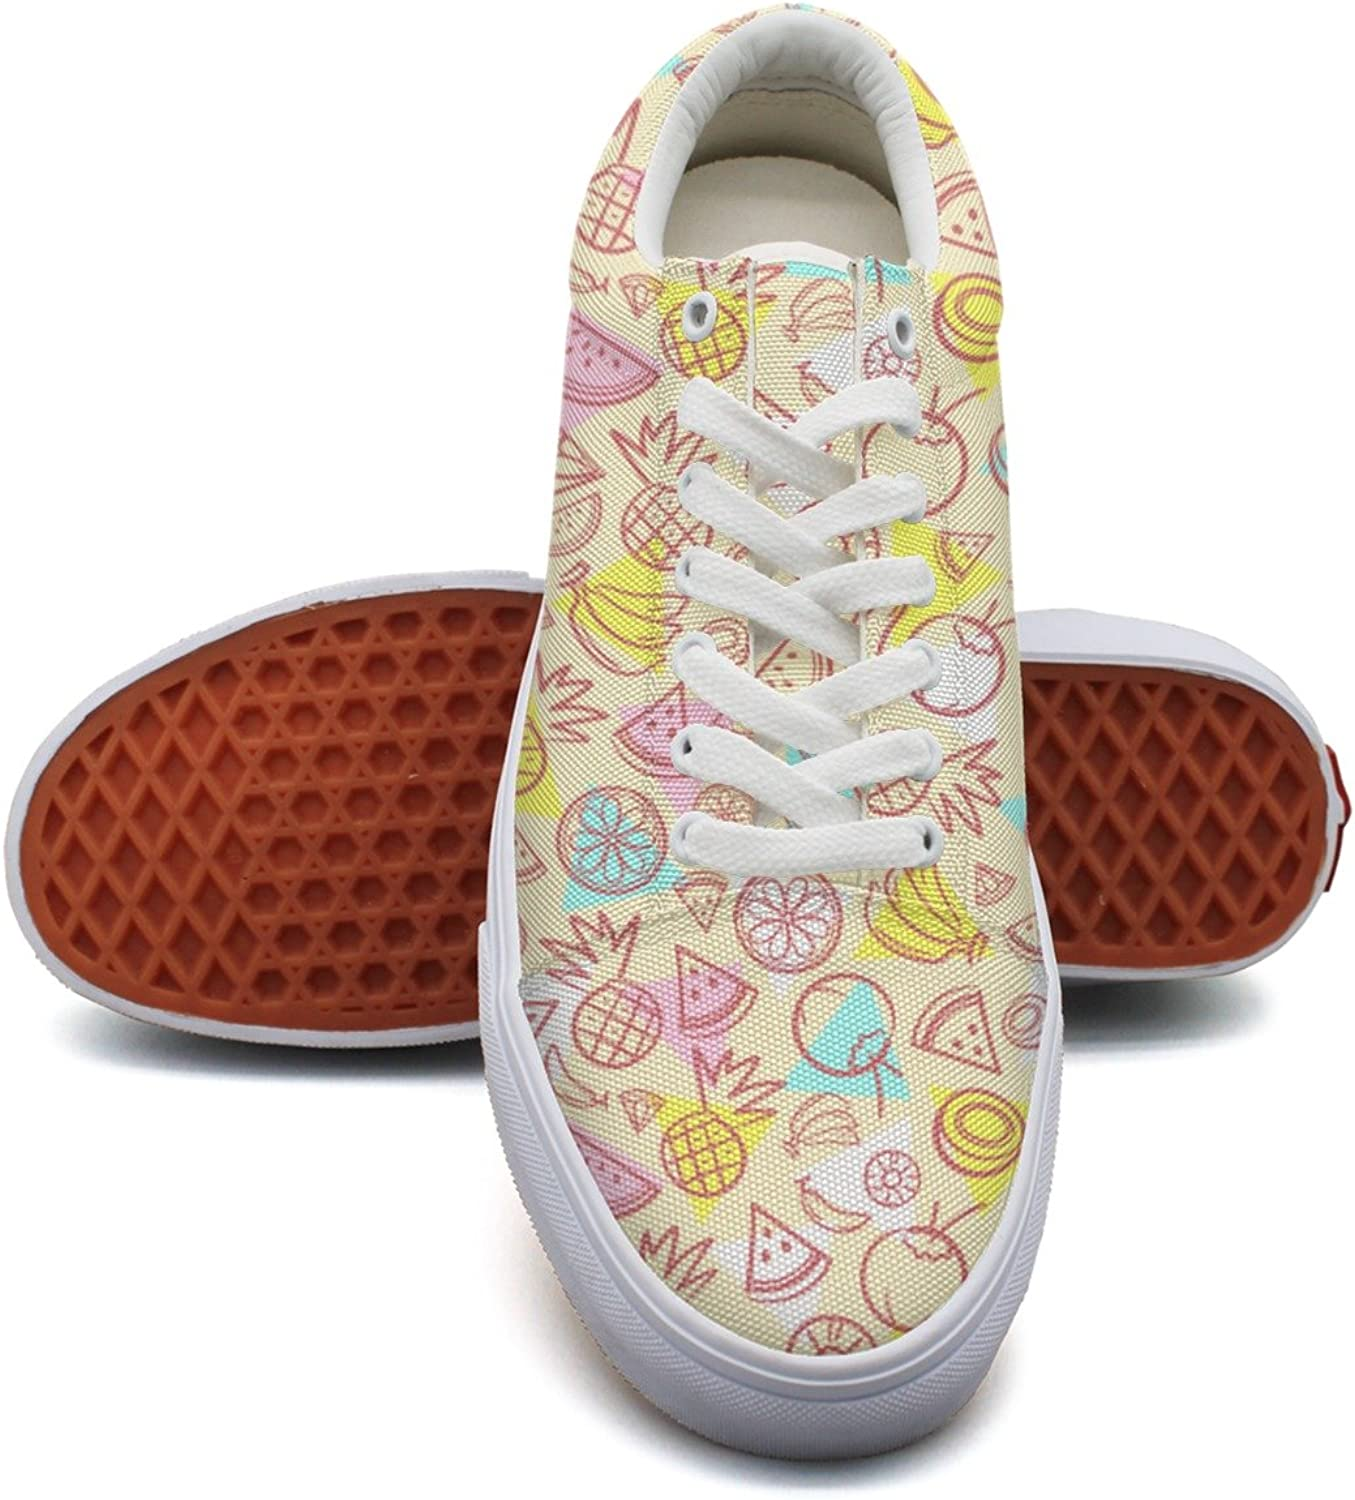 Feenfling Healthiest Fruits Diet Womens Printed Canvas shoes Low Top Best Sneakers shoes for Women